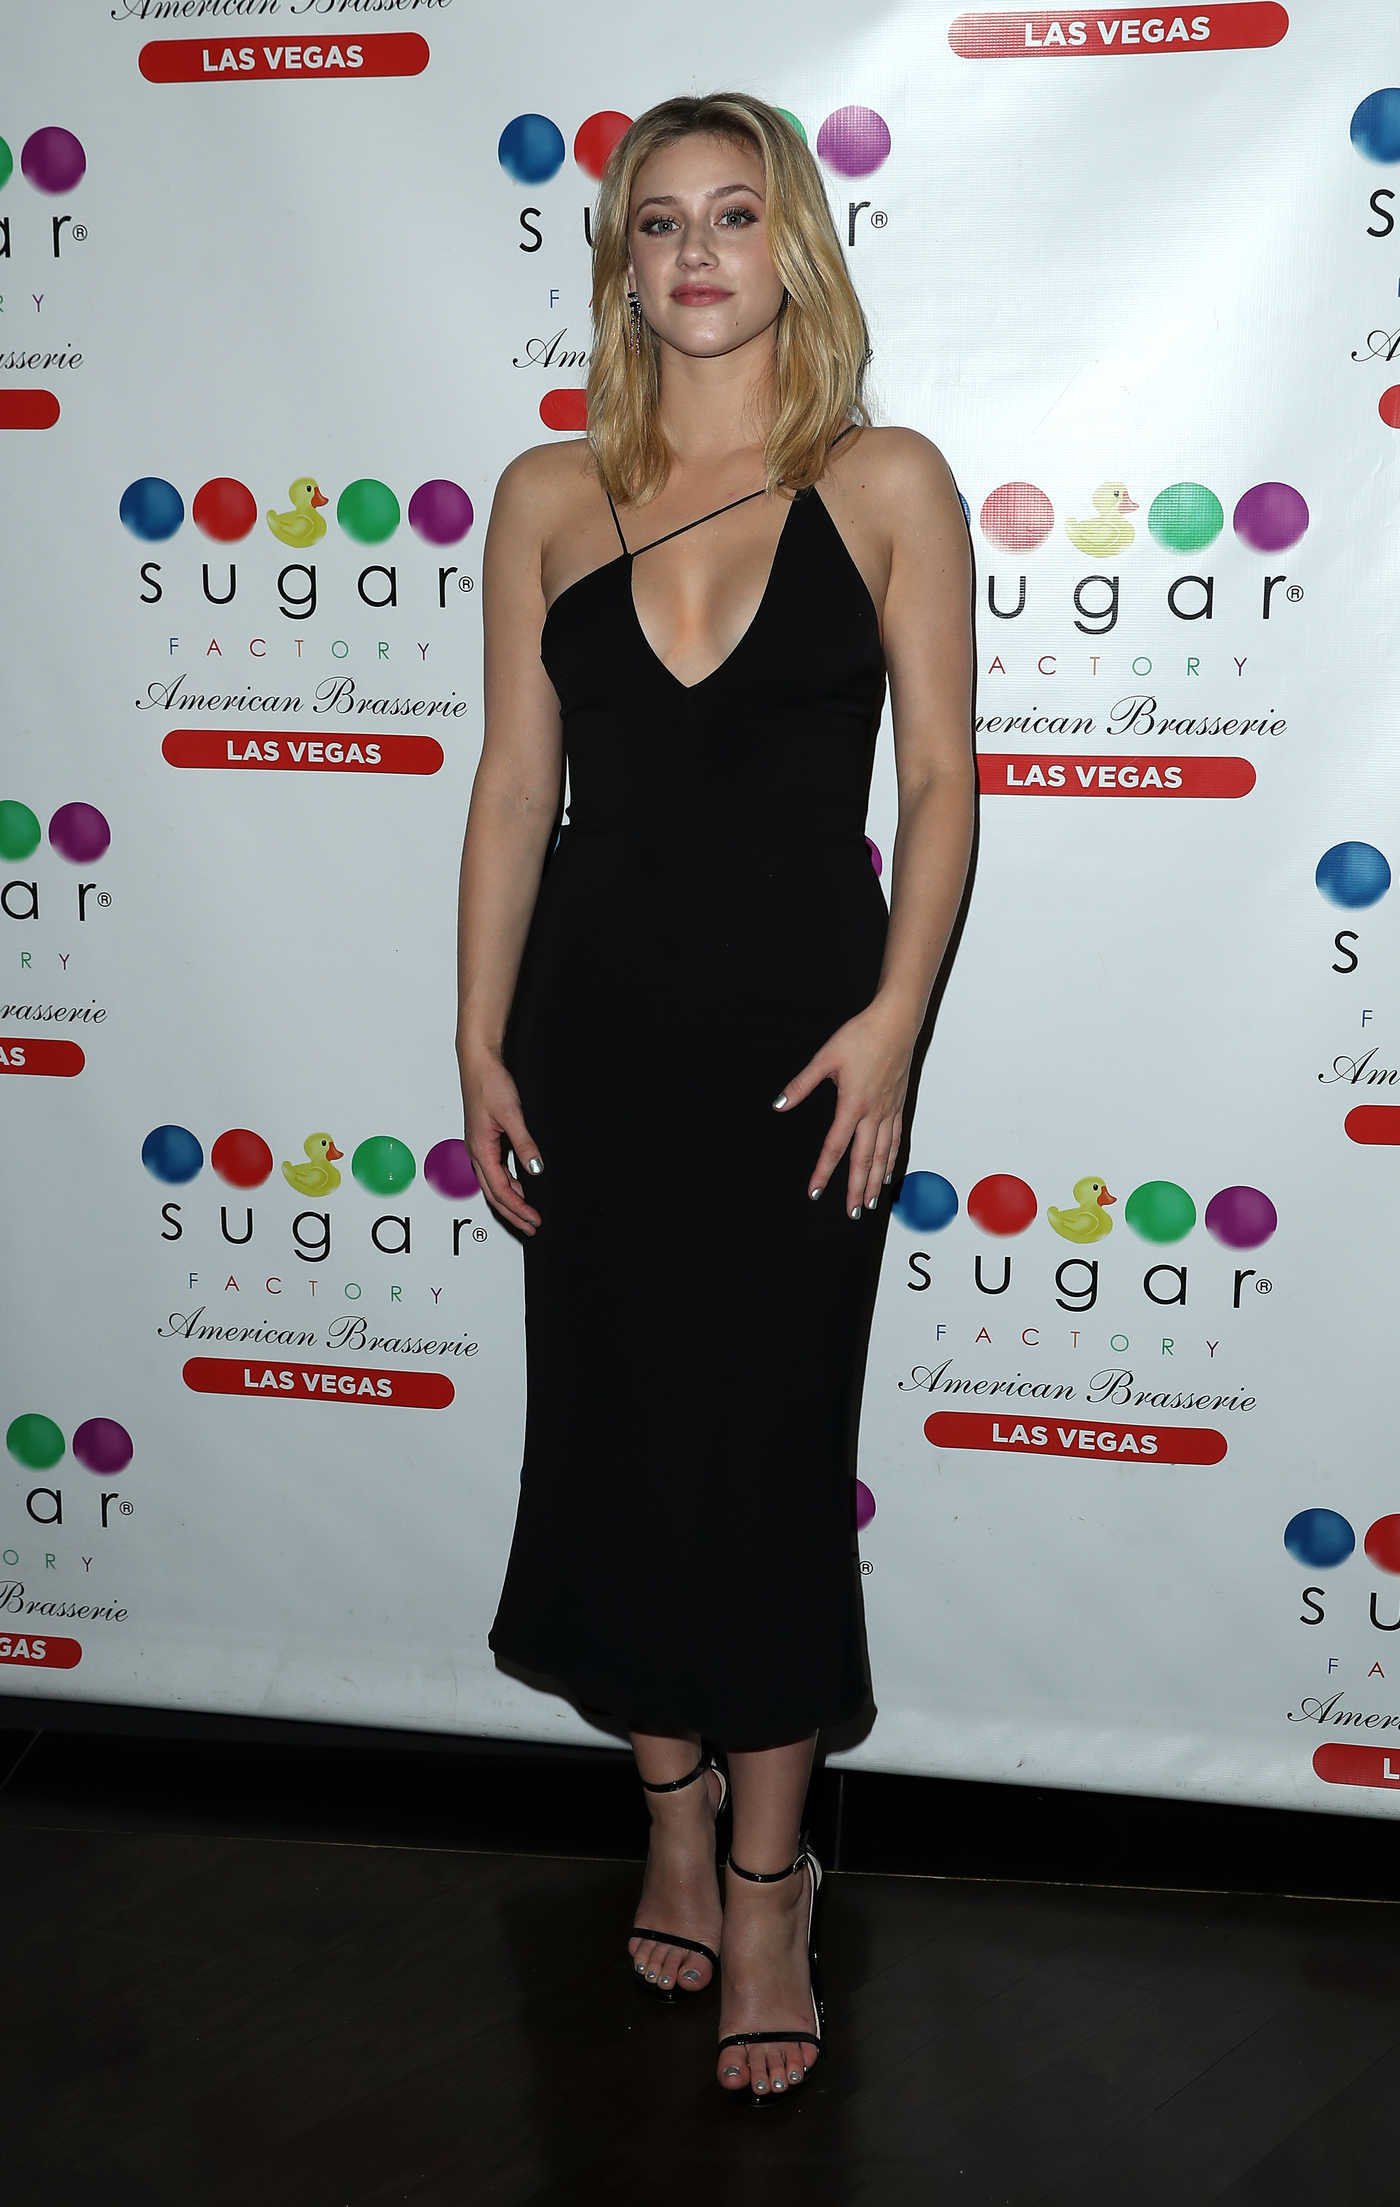 Lili Reinhart at Ocean Drive Magazine Celebrates Its February Issue with Cover Star Lili Reinhart at Sugar Factory in Las Vegas 02/10/2018